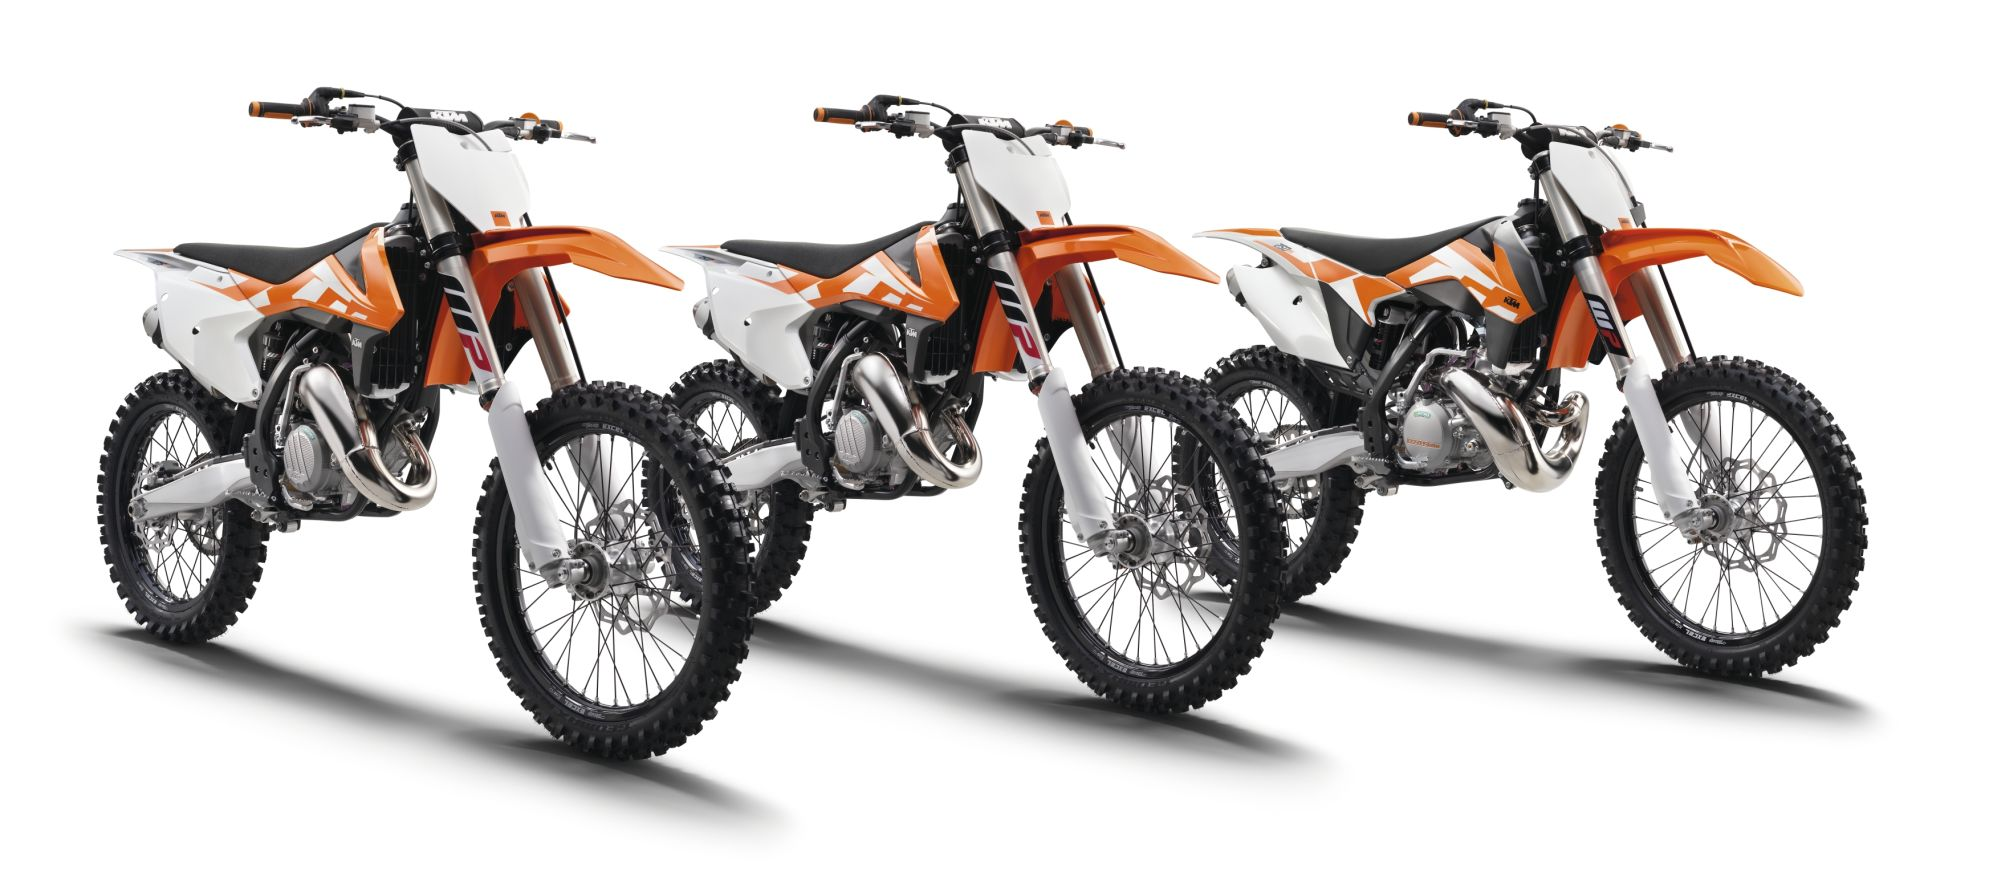 ktm 150 sx alle technischen daten zum modell 150 sx von ktm. Black Bedroom Furniture Sets. Home Design Ideas